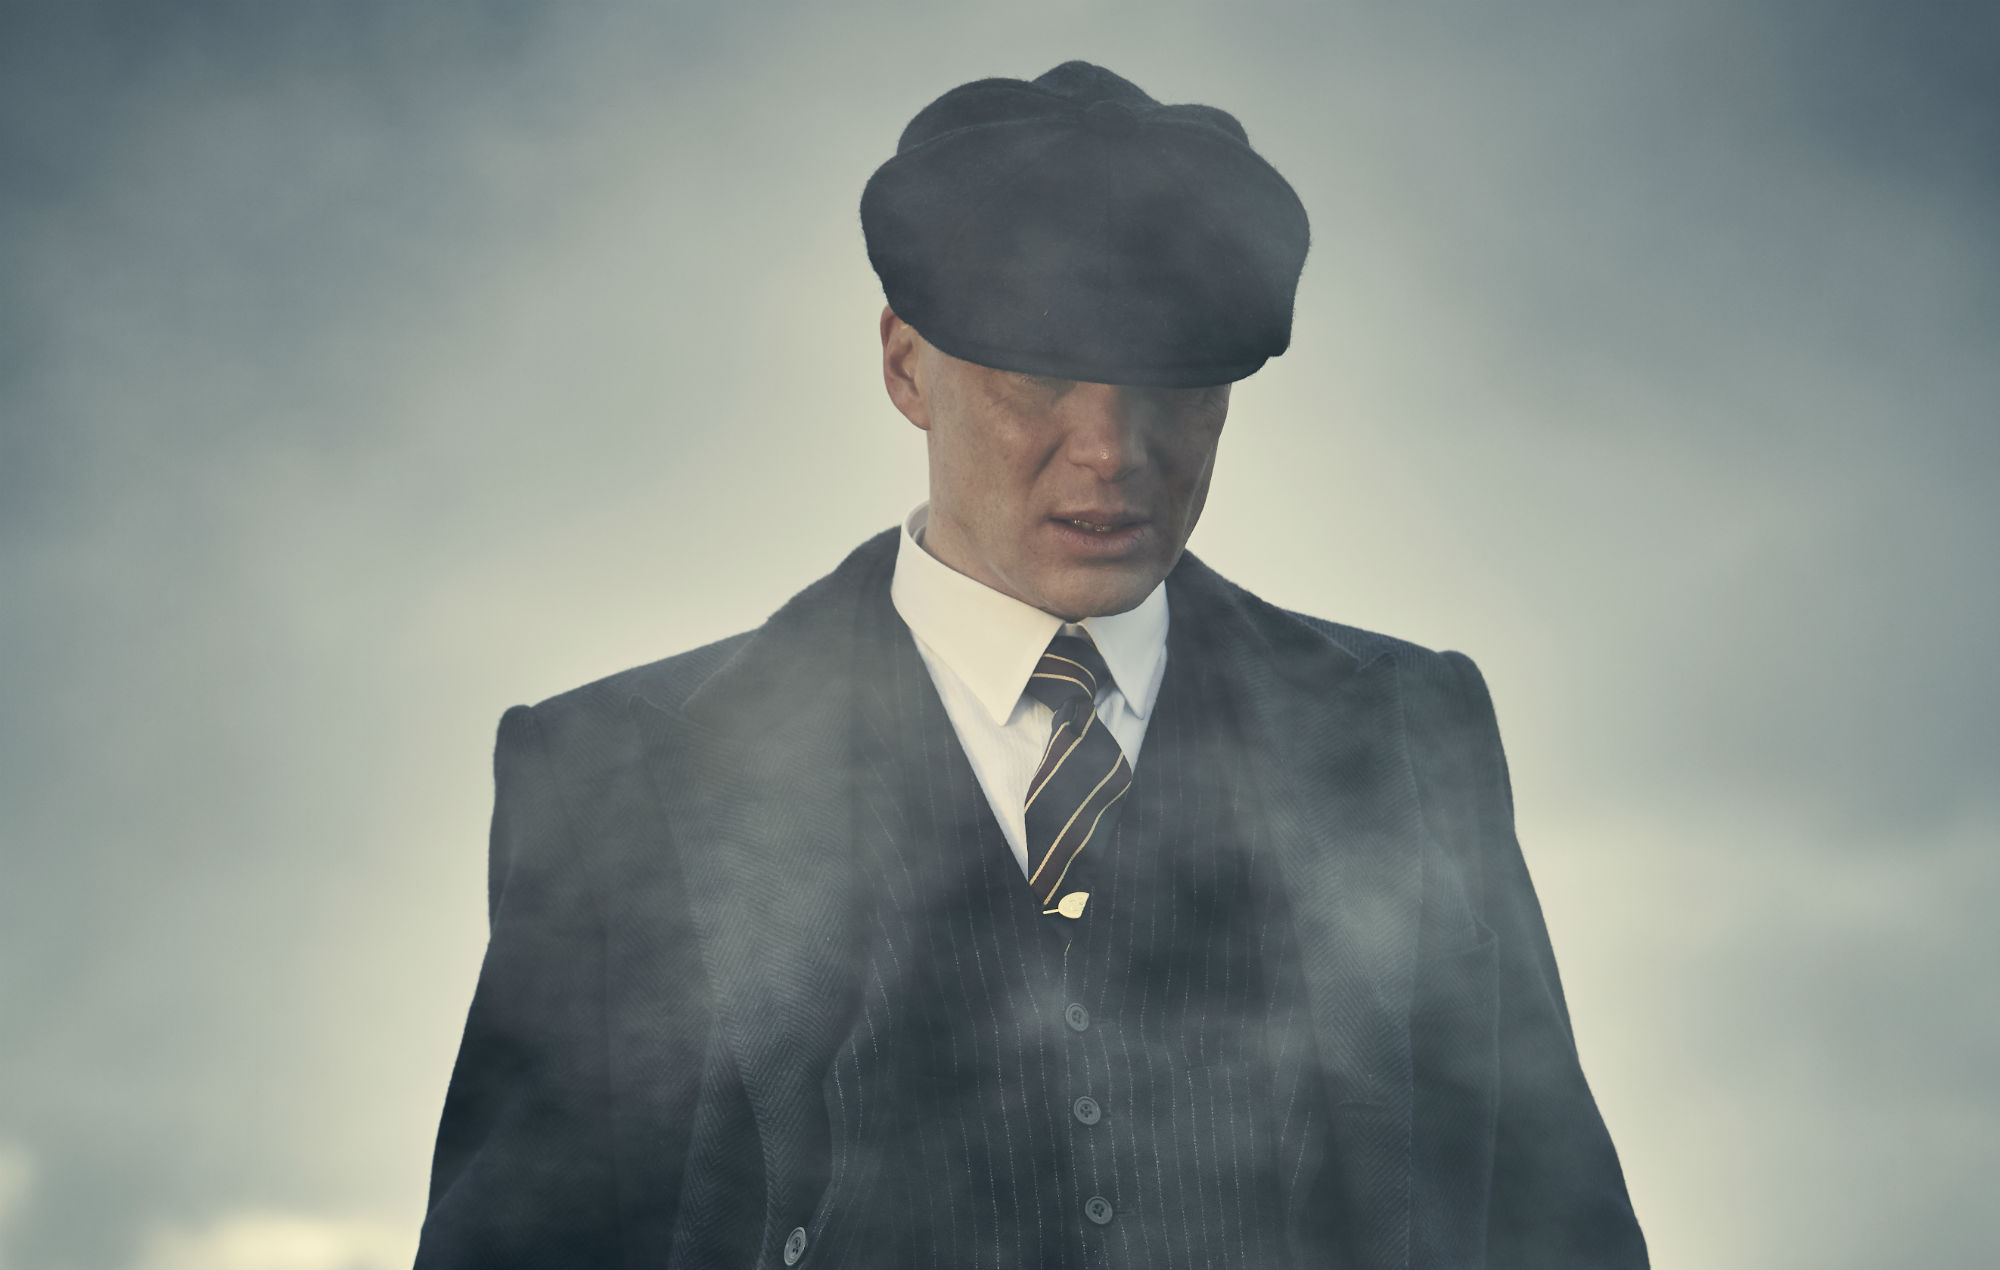 First ever 'Peaky Blinders' soundtrack to be released – hear PJ Harvey's cover of 'Red Right Hand'